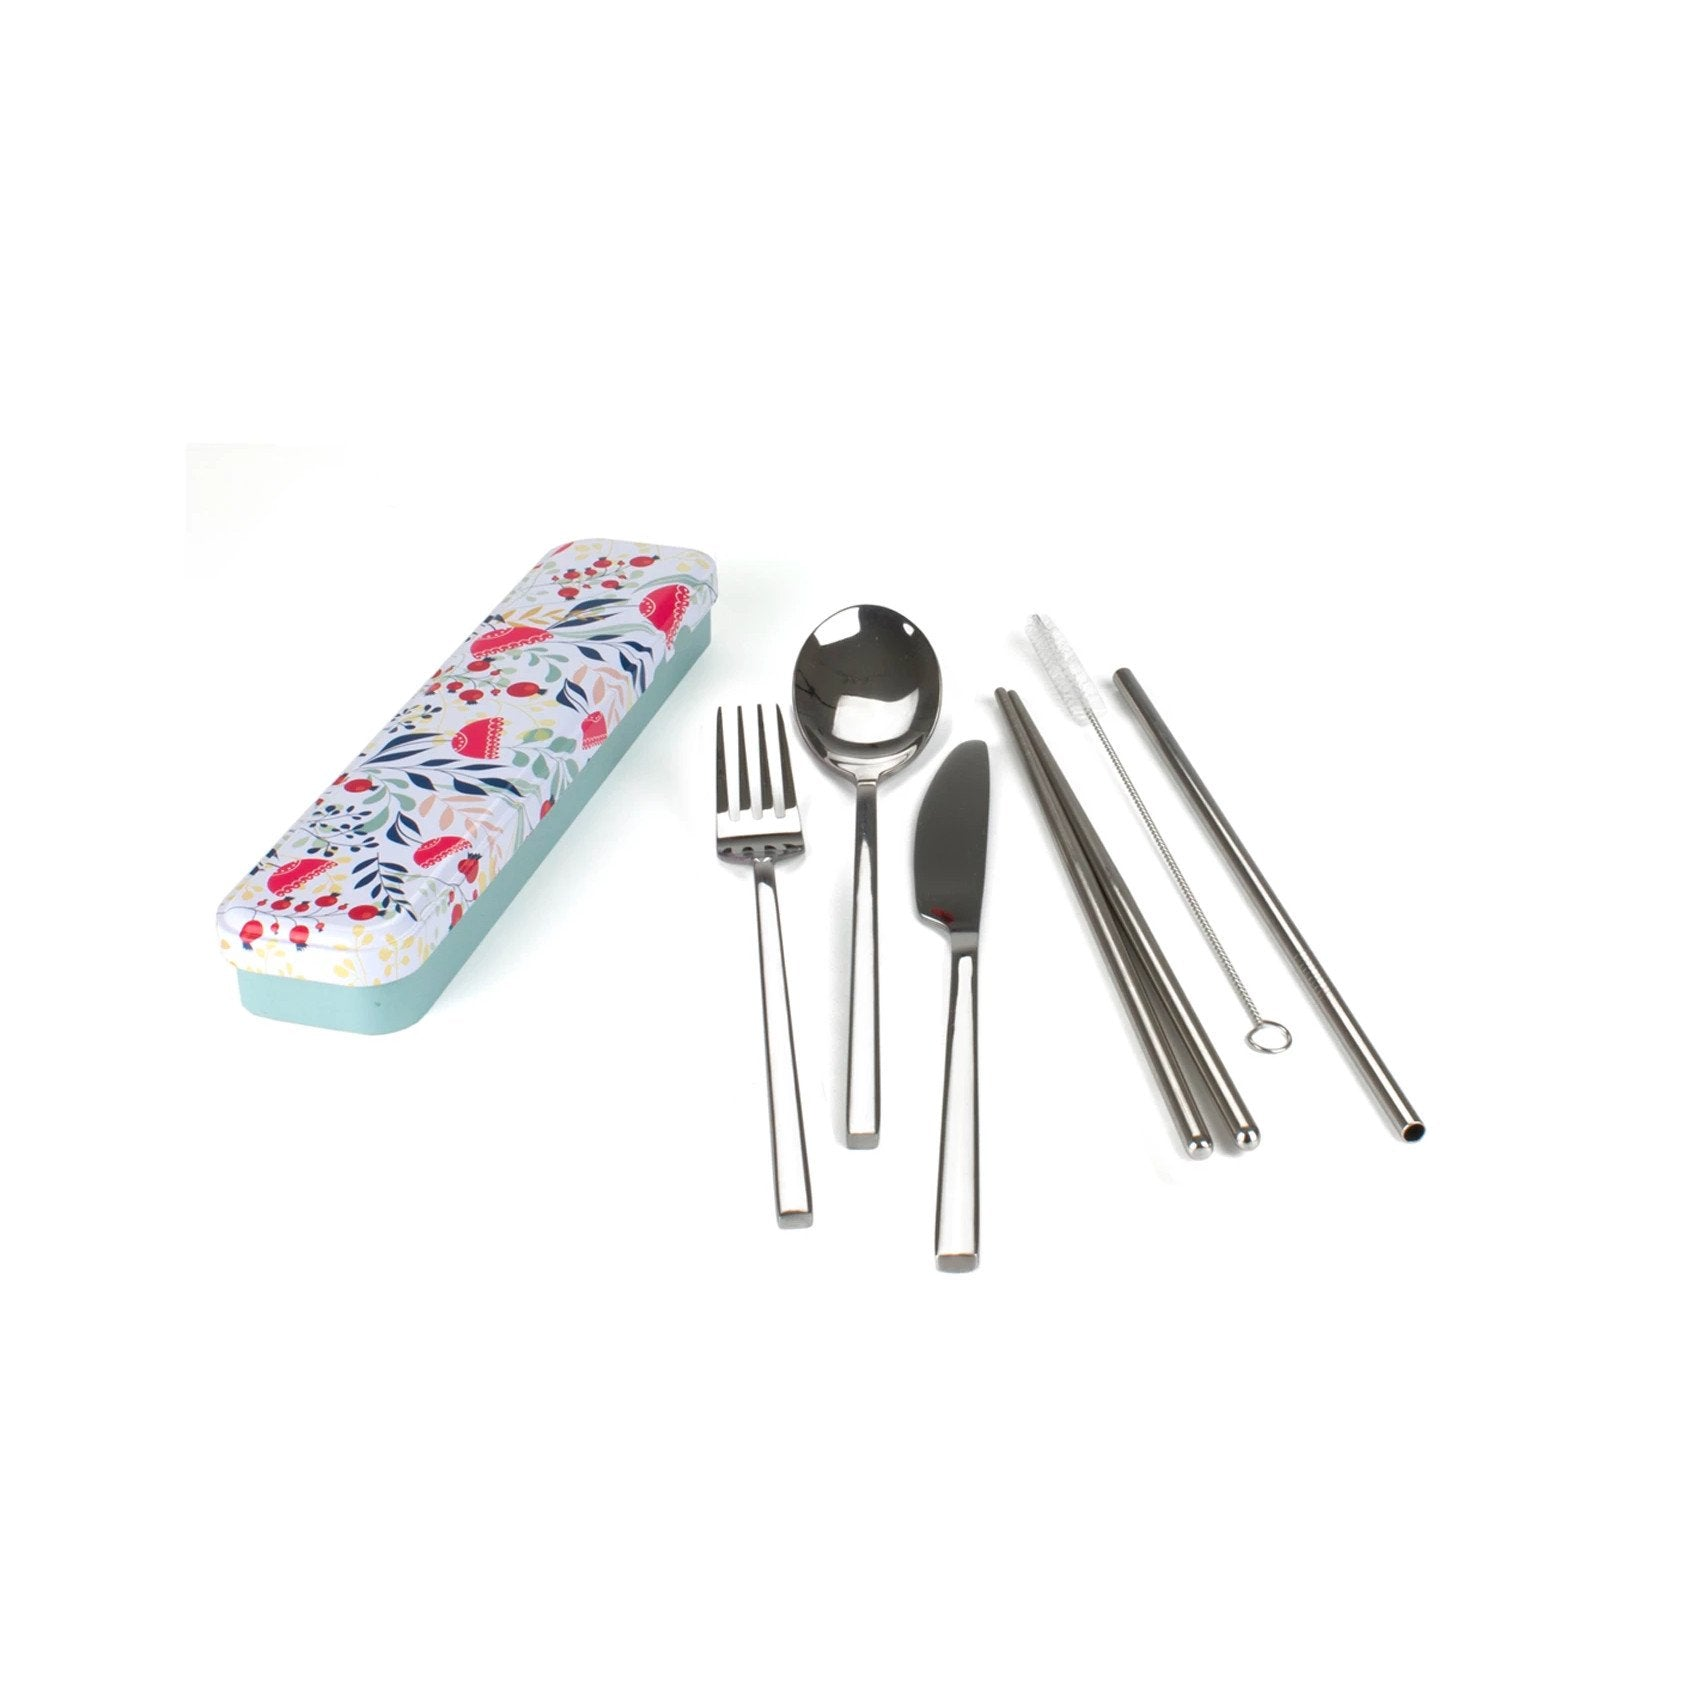 Reusable Cutlery Travel Set Retro Kitchen Lifestyle Botanical at Little Earth Nest Eco Shop